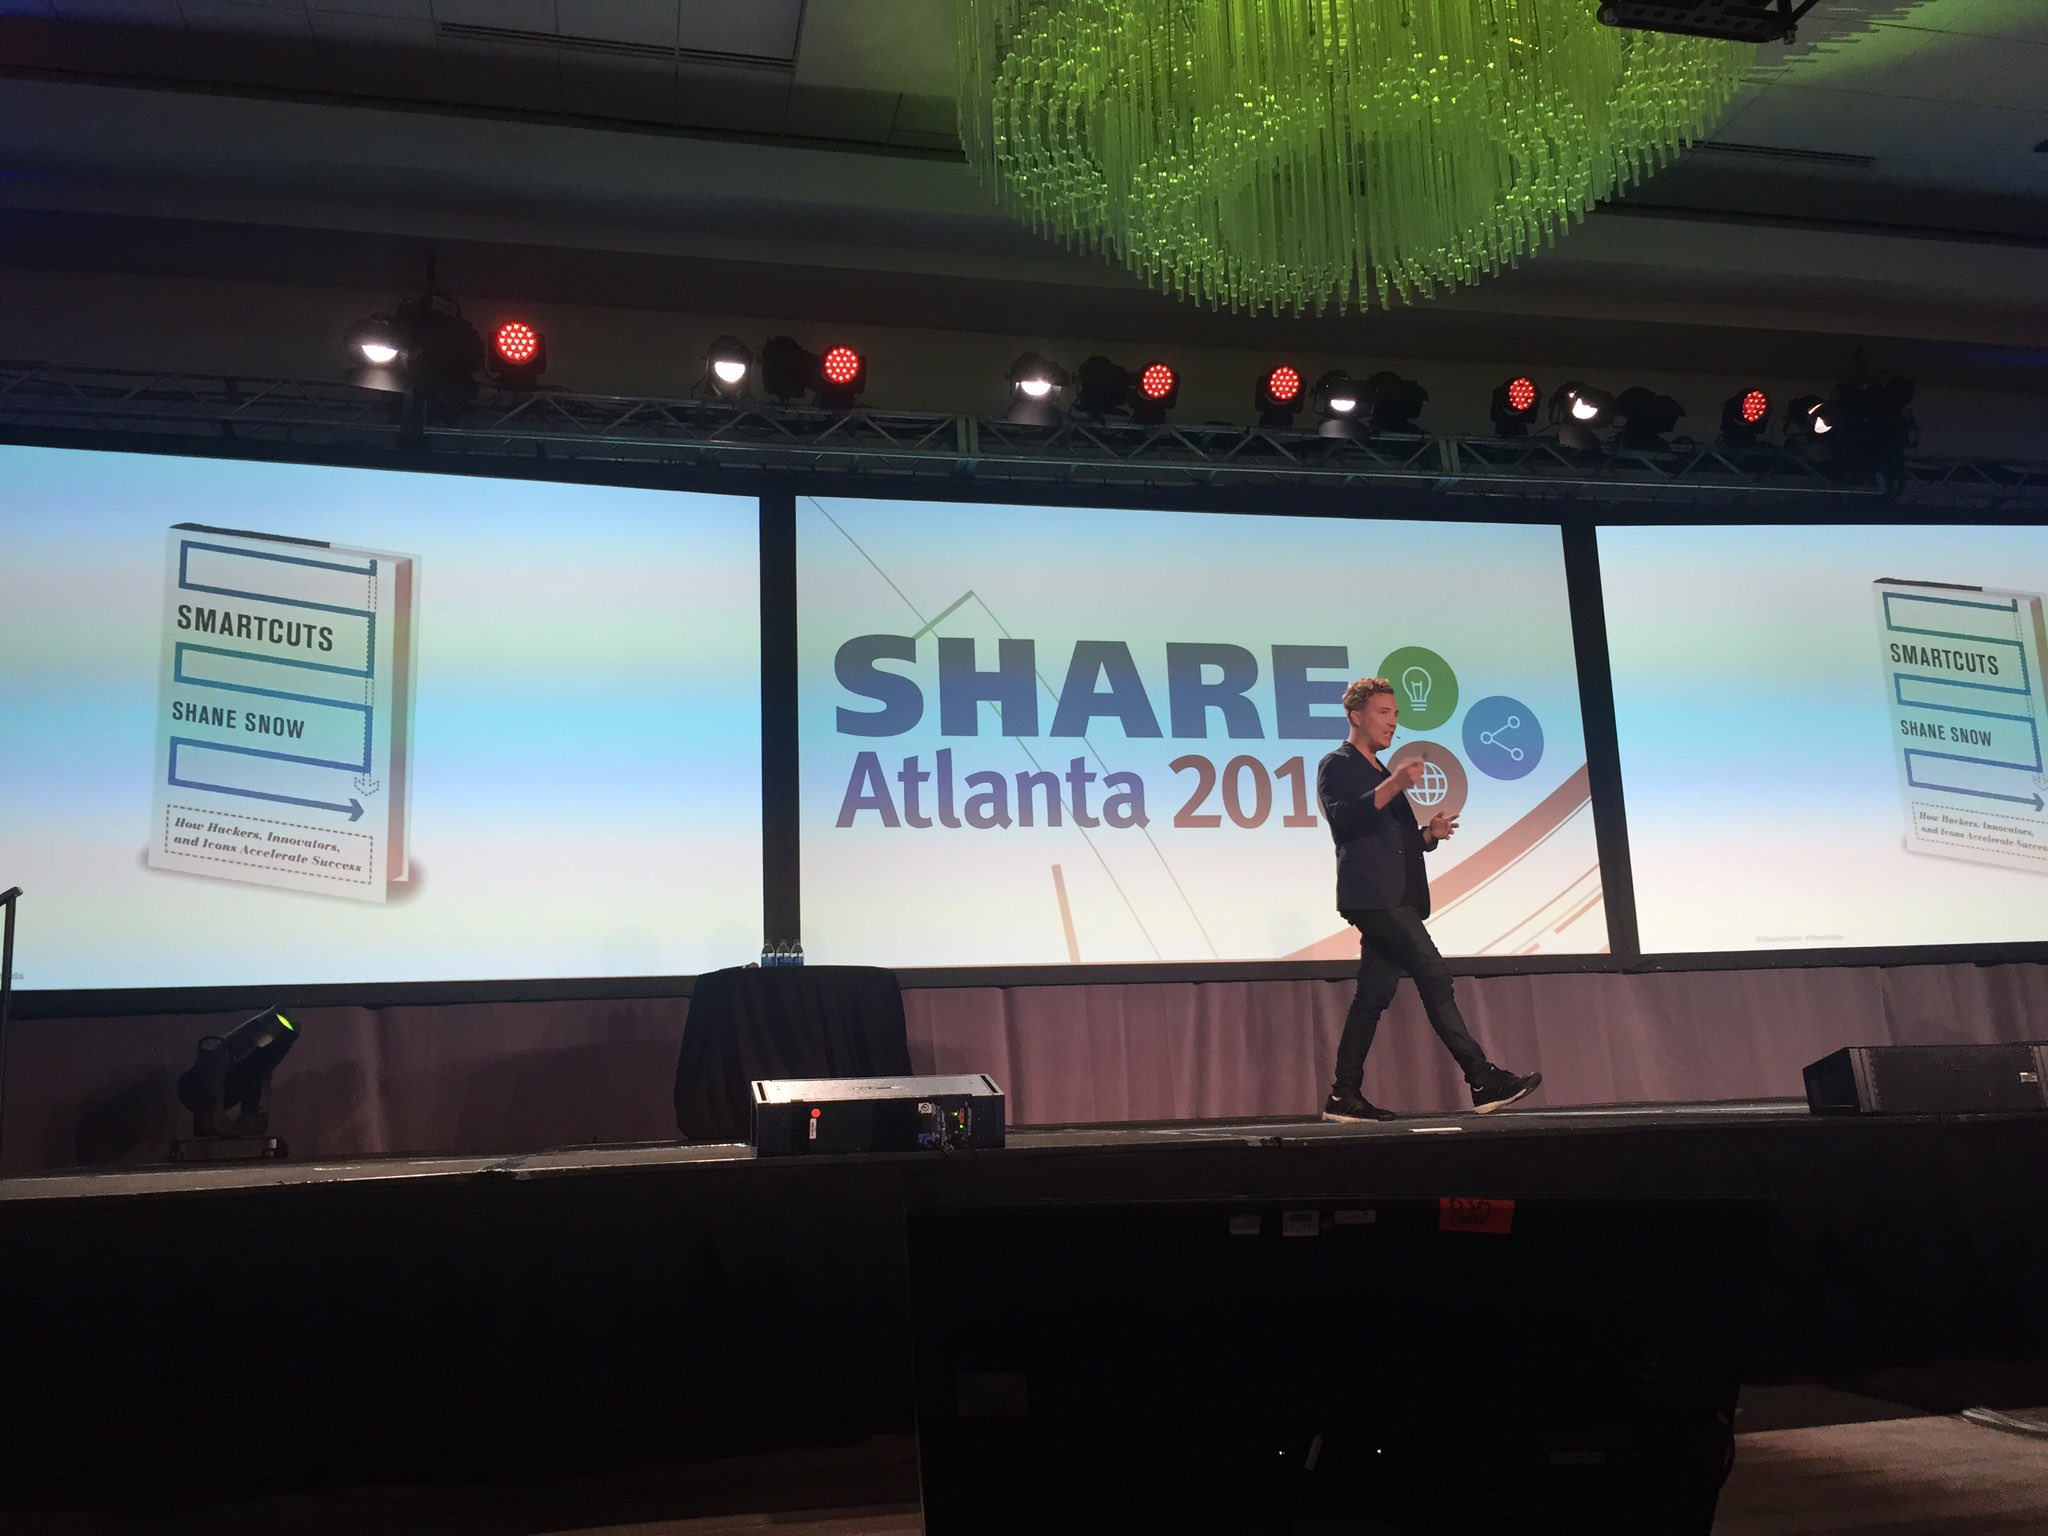 Food for thought: How have YOU used lateral thinking? #SHAREatl https://t.co/fjXsBbzDT6